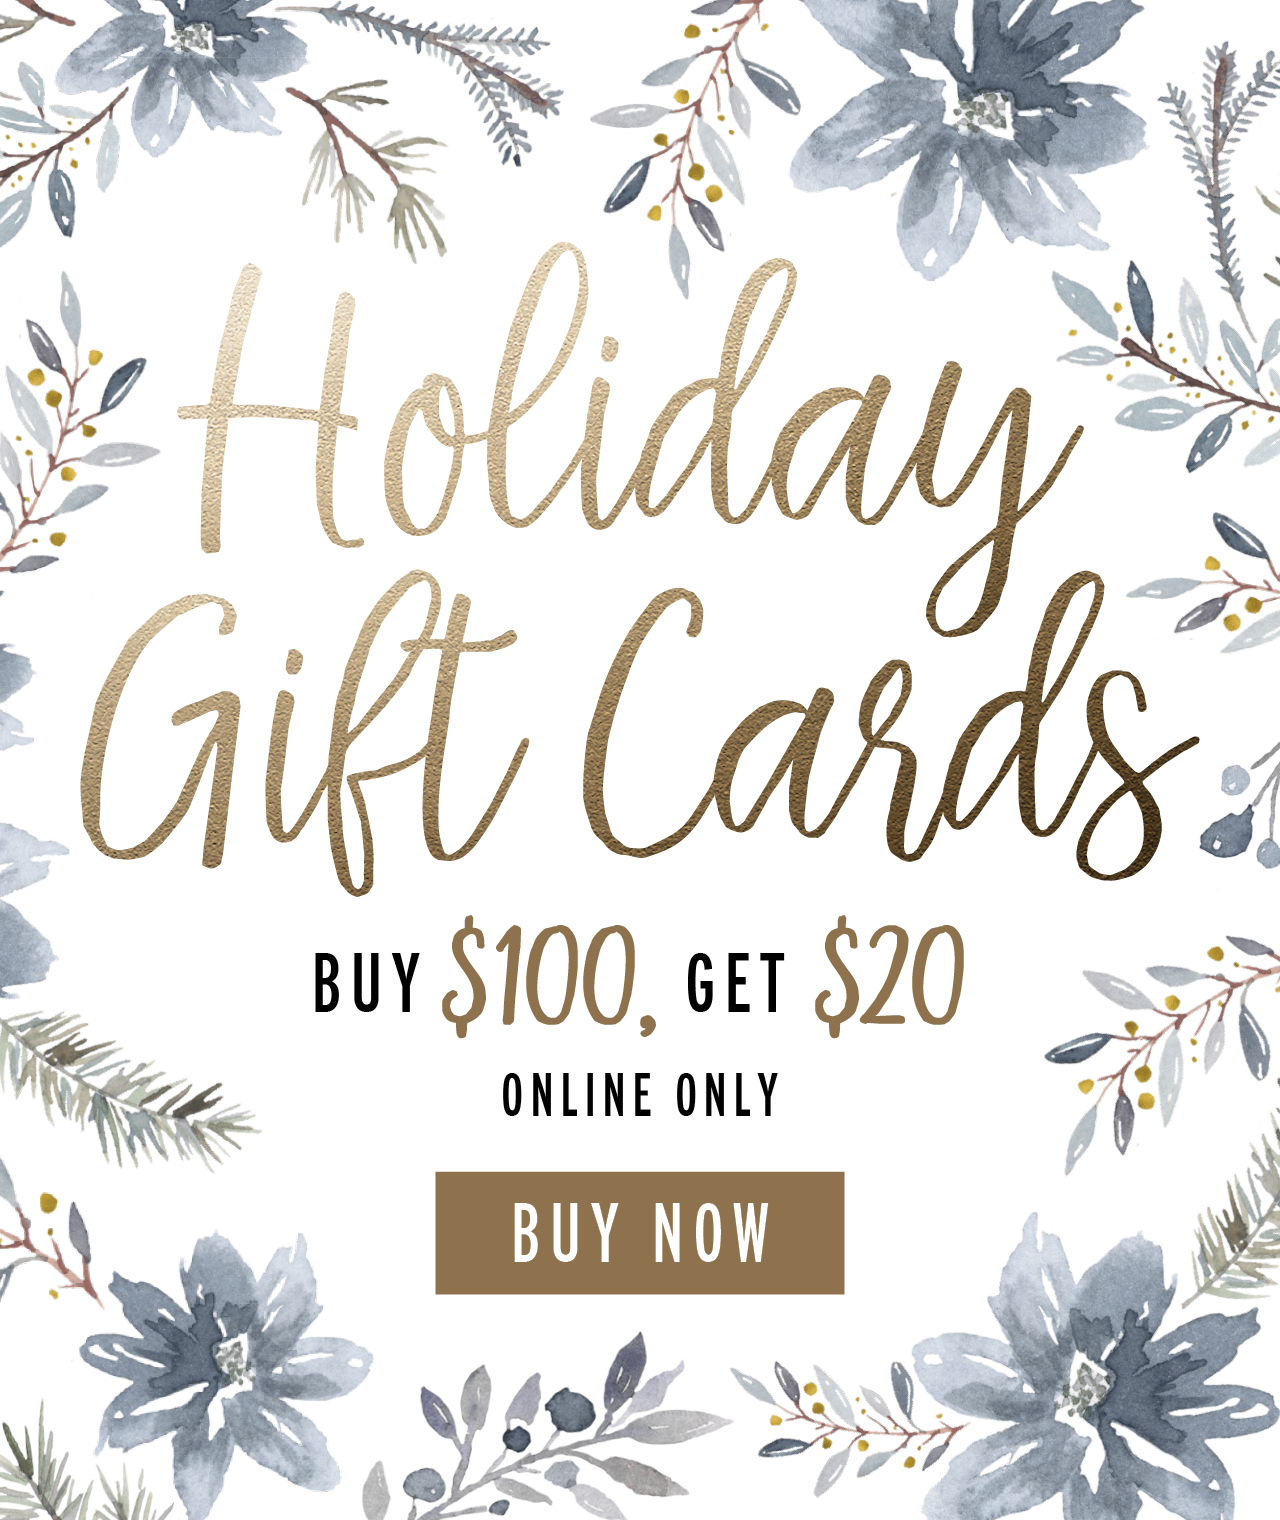 Holiday Gift Cards